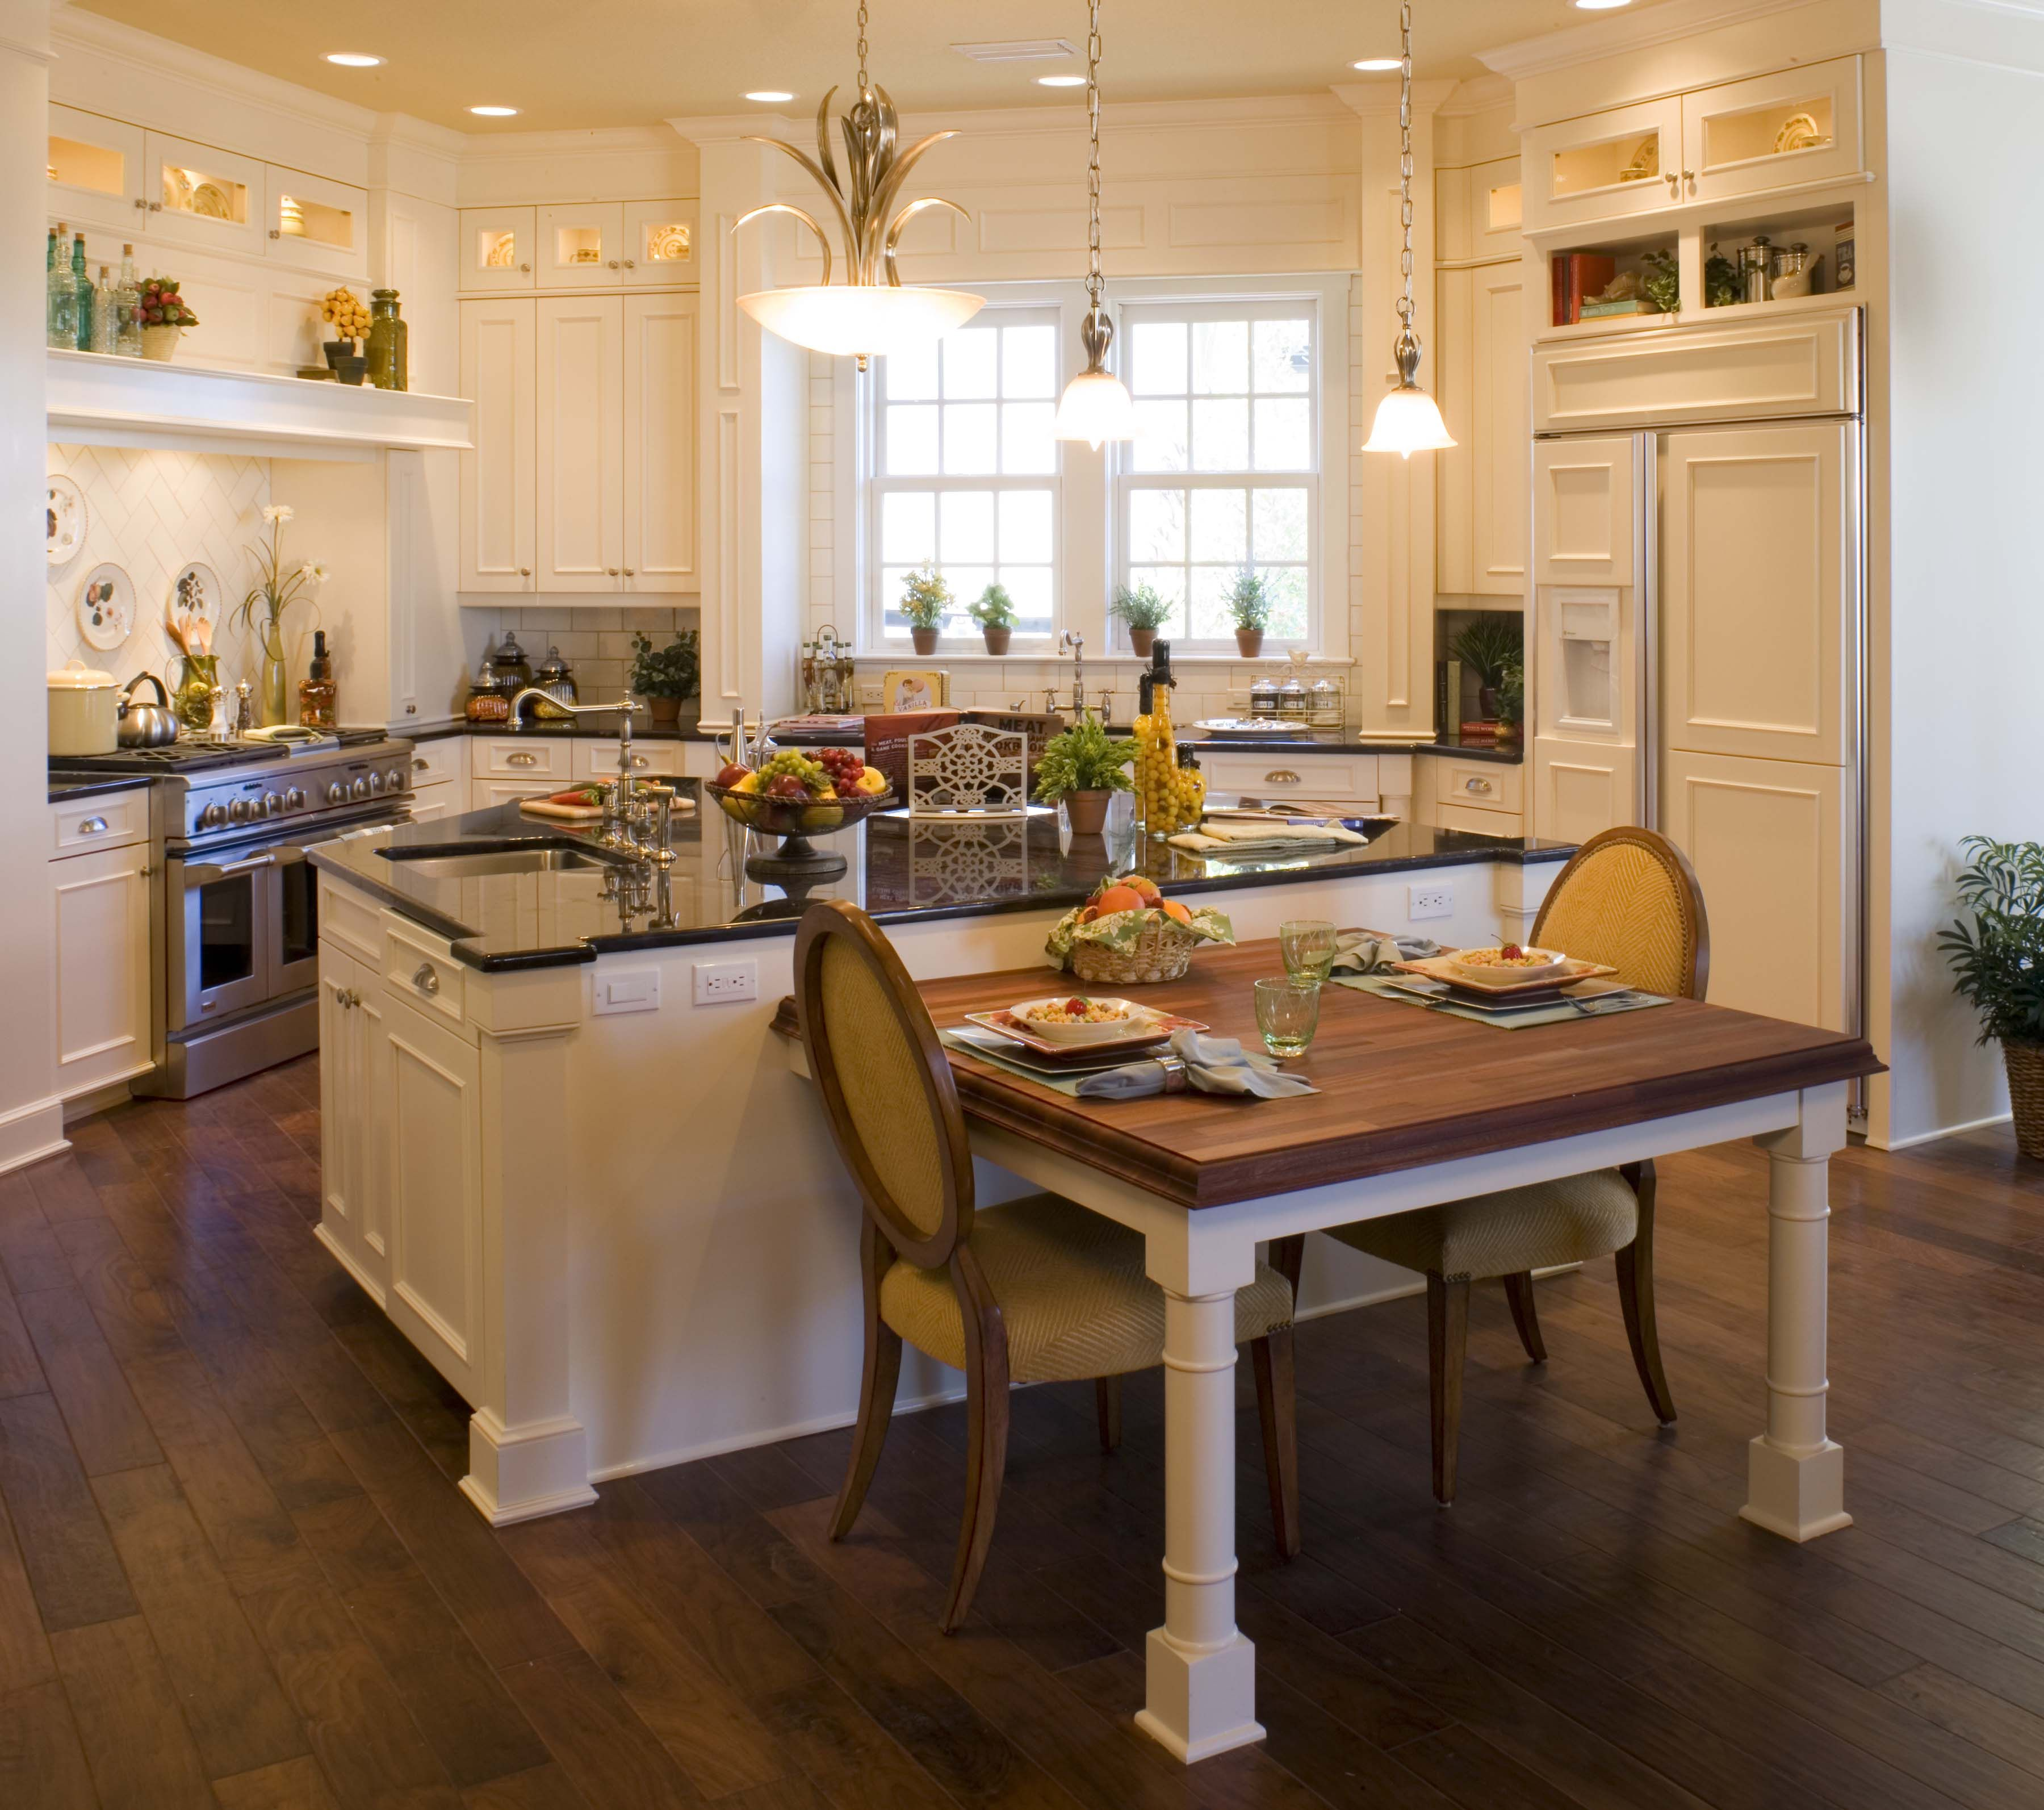 Peregrine Homes Designed This Kitchen To Have An Old